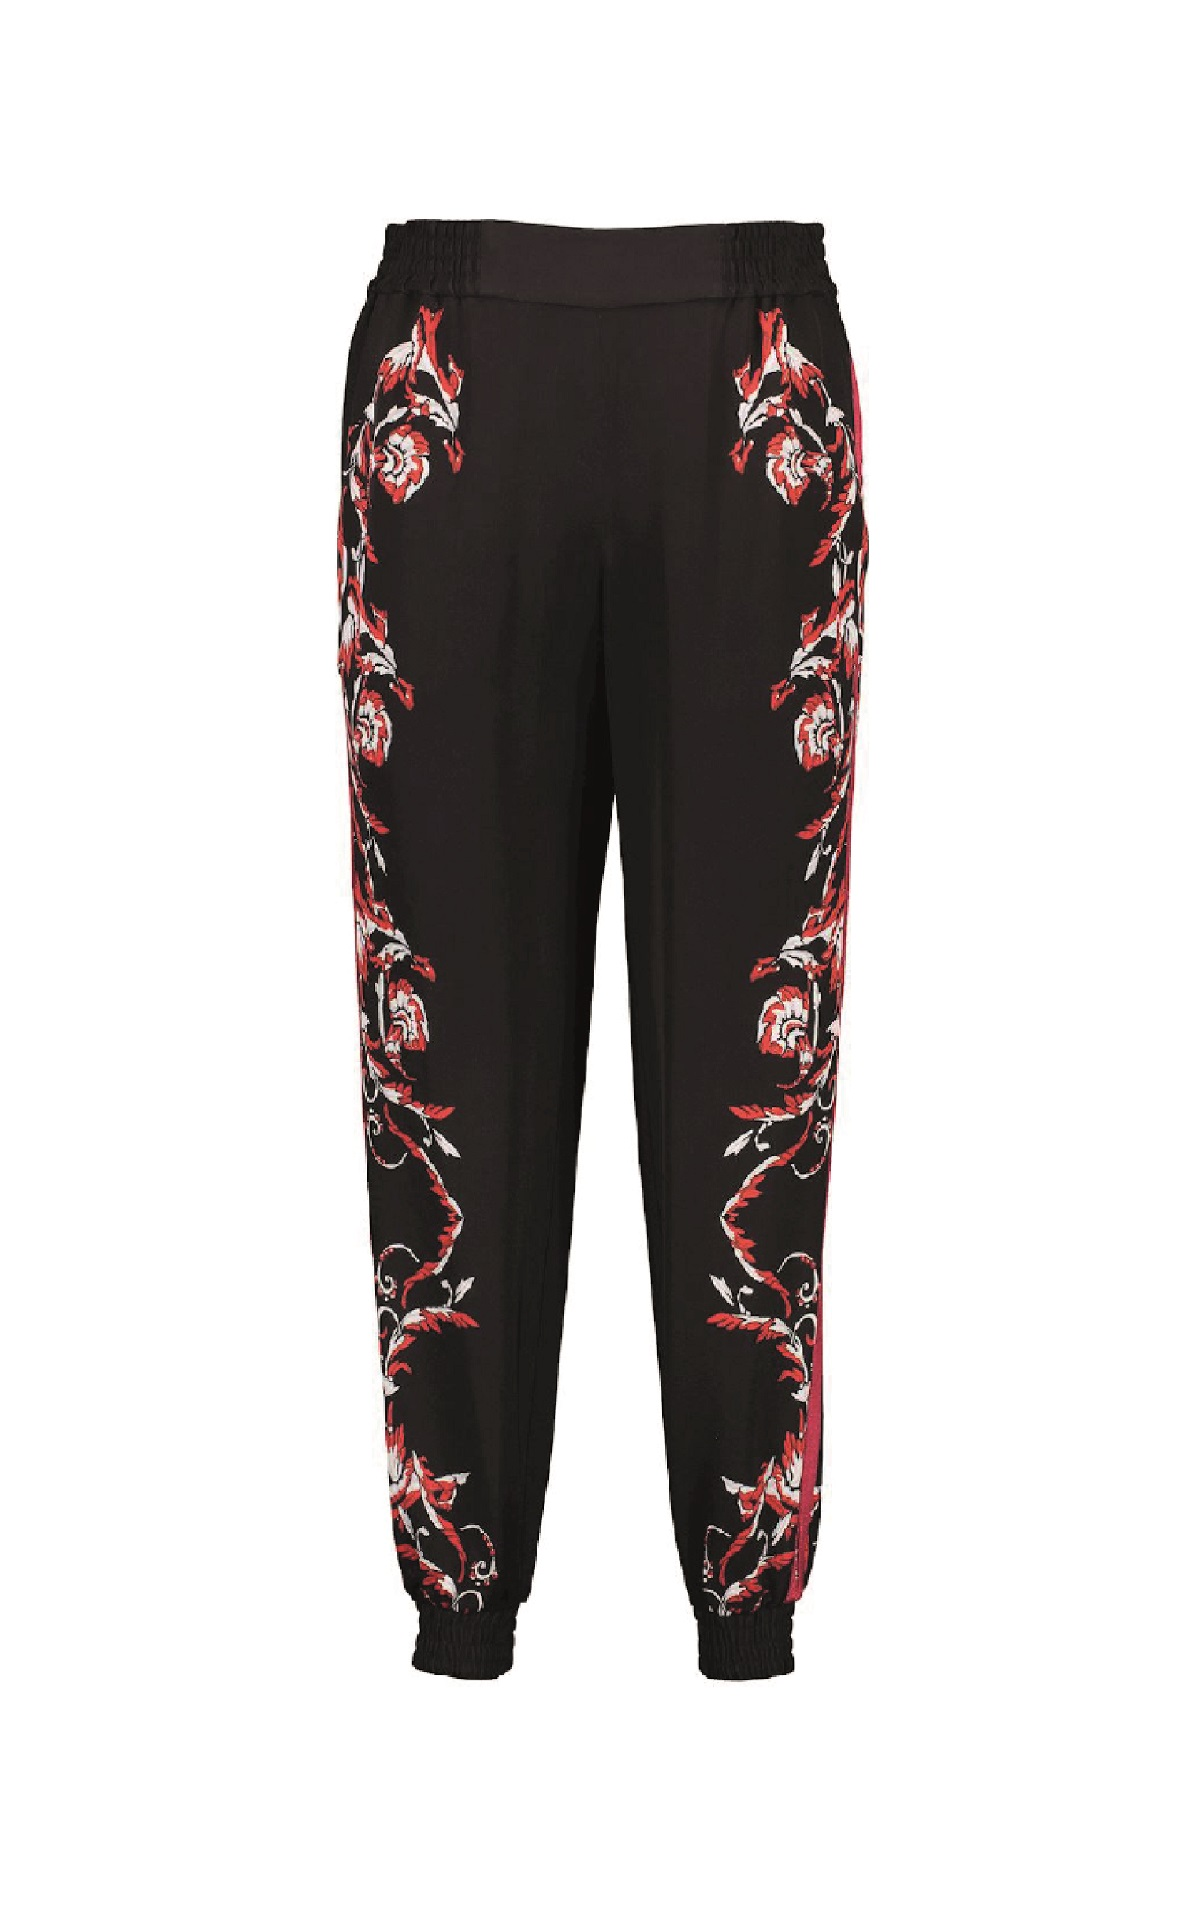 Flowered pants Escada